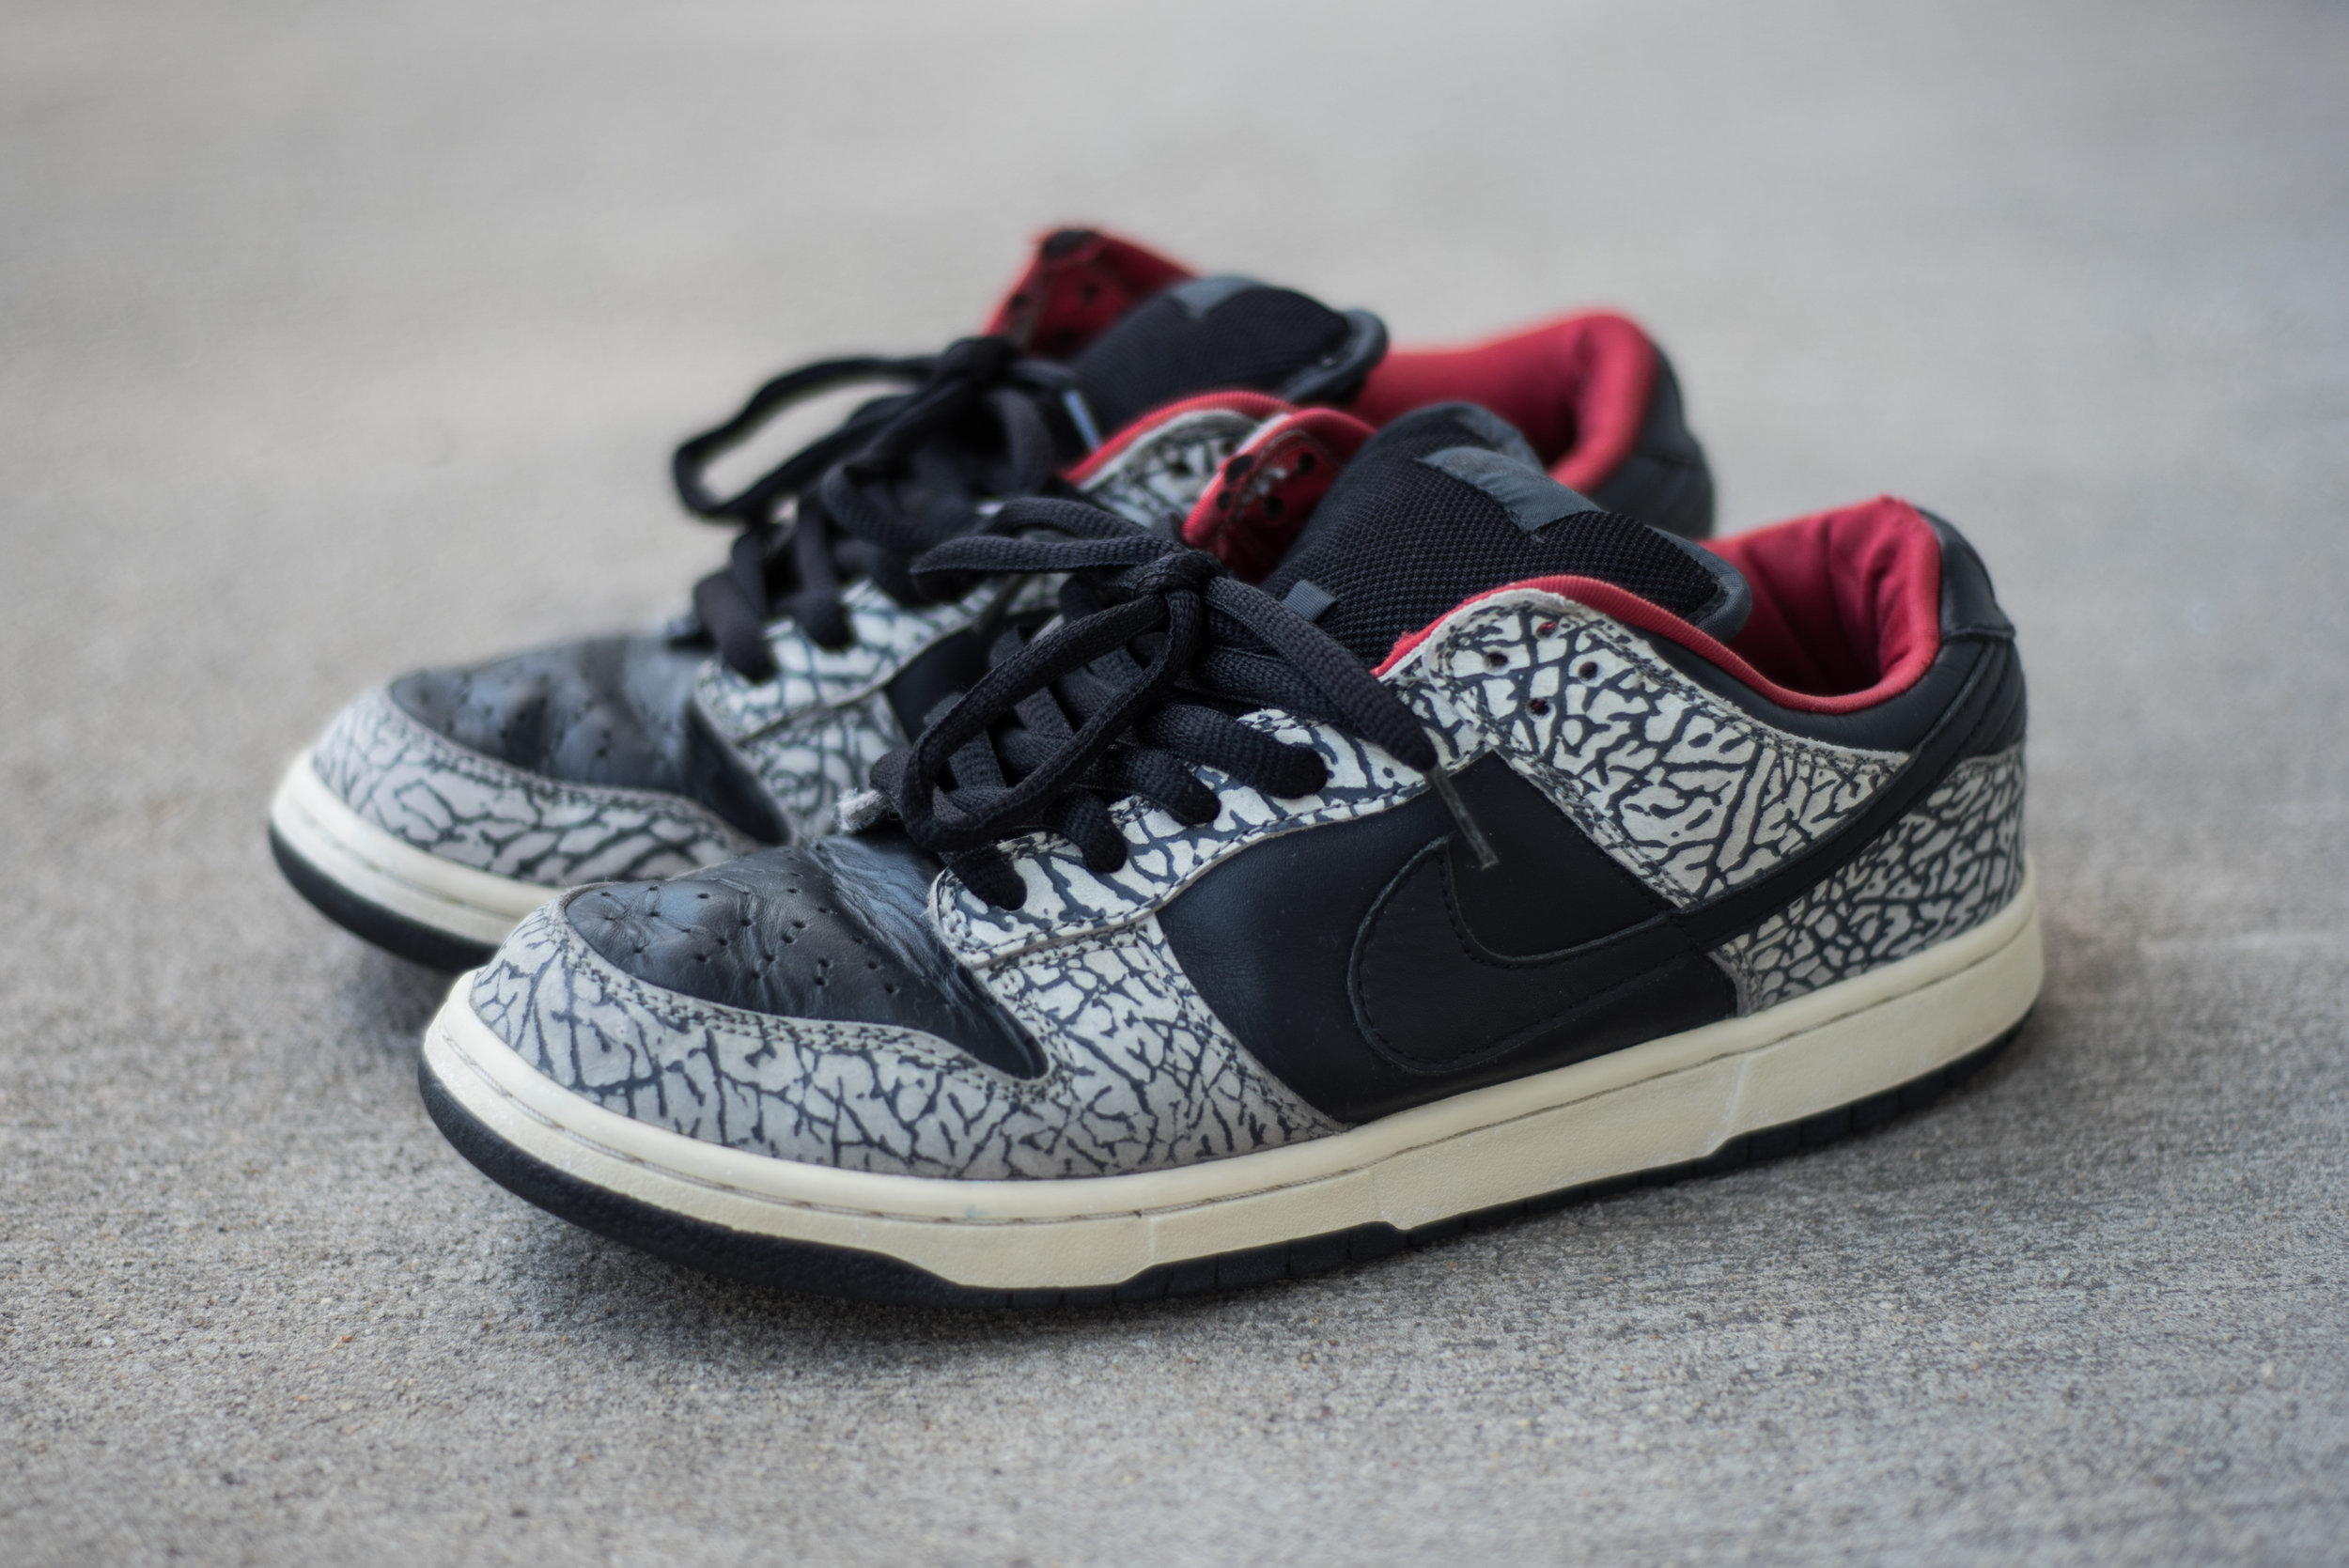 My personal pair of the sneakers the mentioned article was referencing. Only 500 authorized pairs exist. They pay homage to one of Nike's most popular sneakers, the Black Cement Air Jordan III.